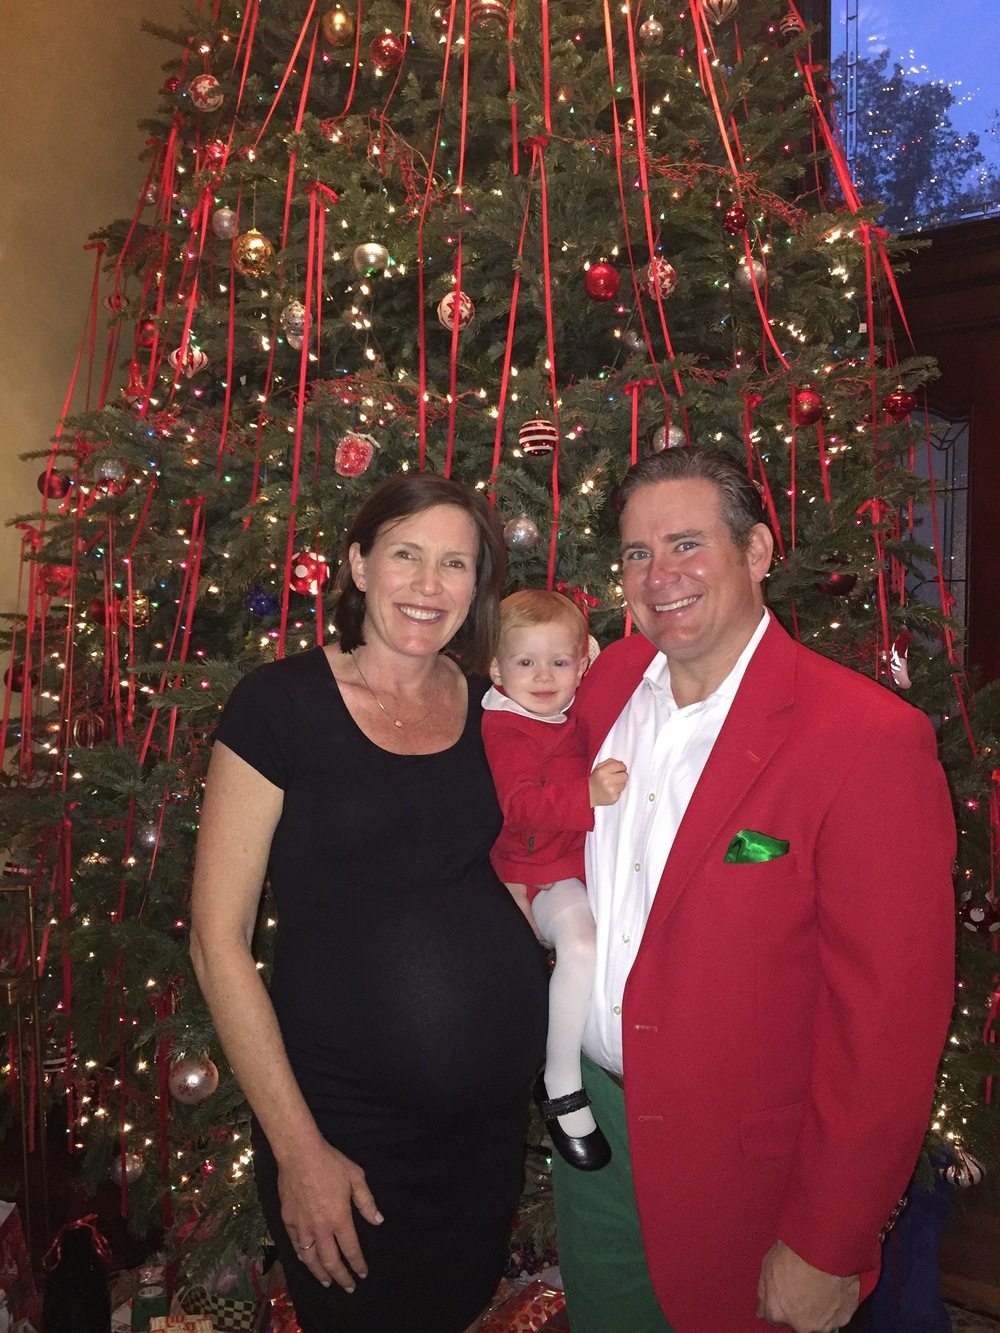 Christmas Day 2015 - 32 Weeks